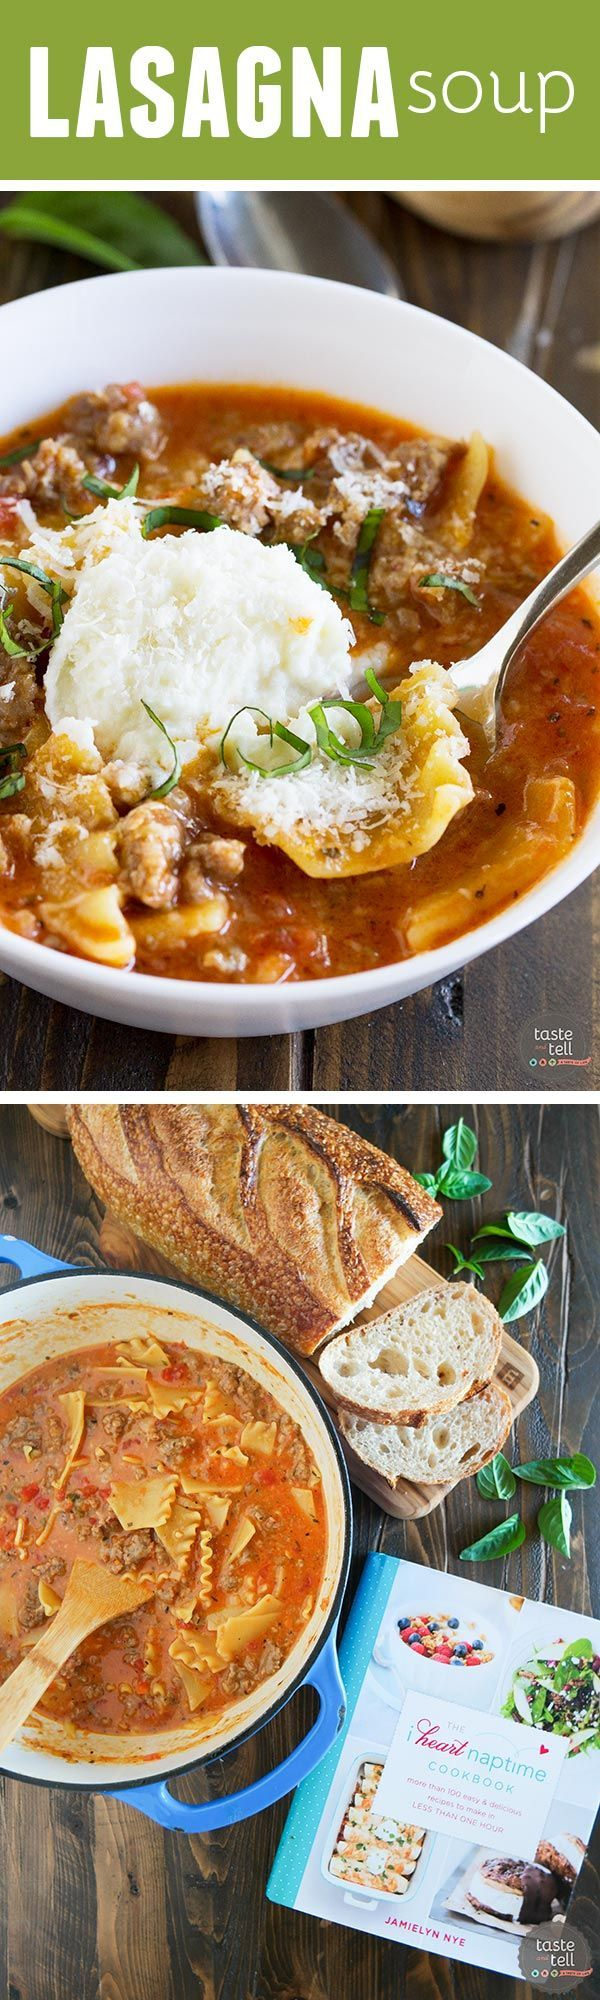 All of the flavors of lasagna in this easy, comforting Lasagna Soup Recipe! This soup is the perfect way to warm up with a taste of Italy.: